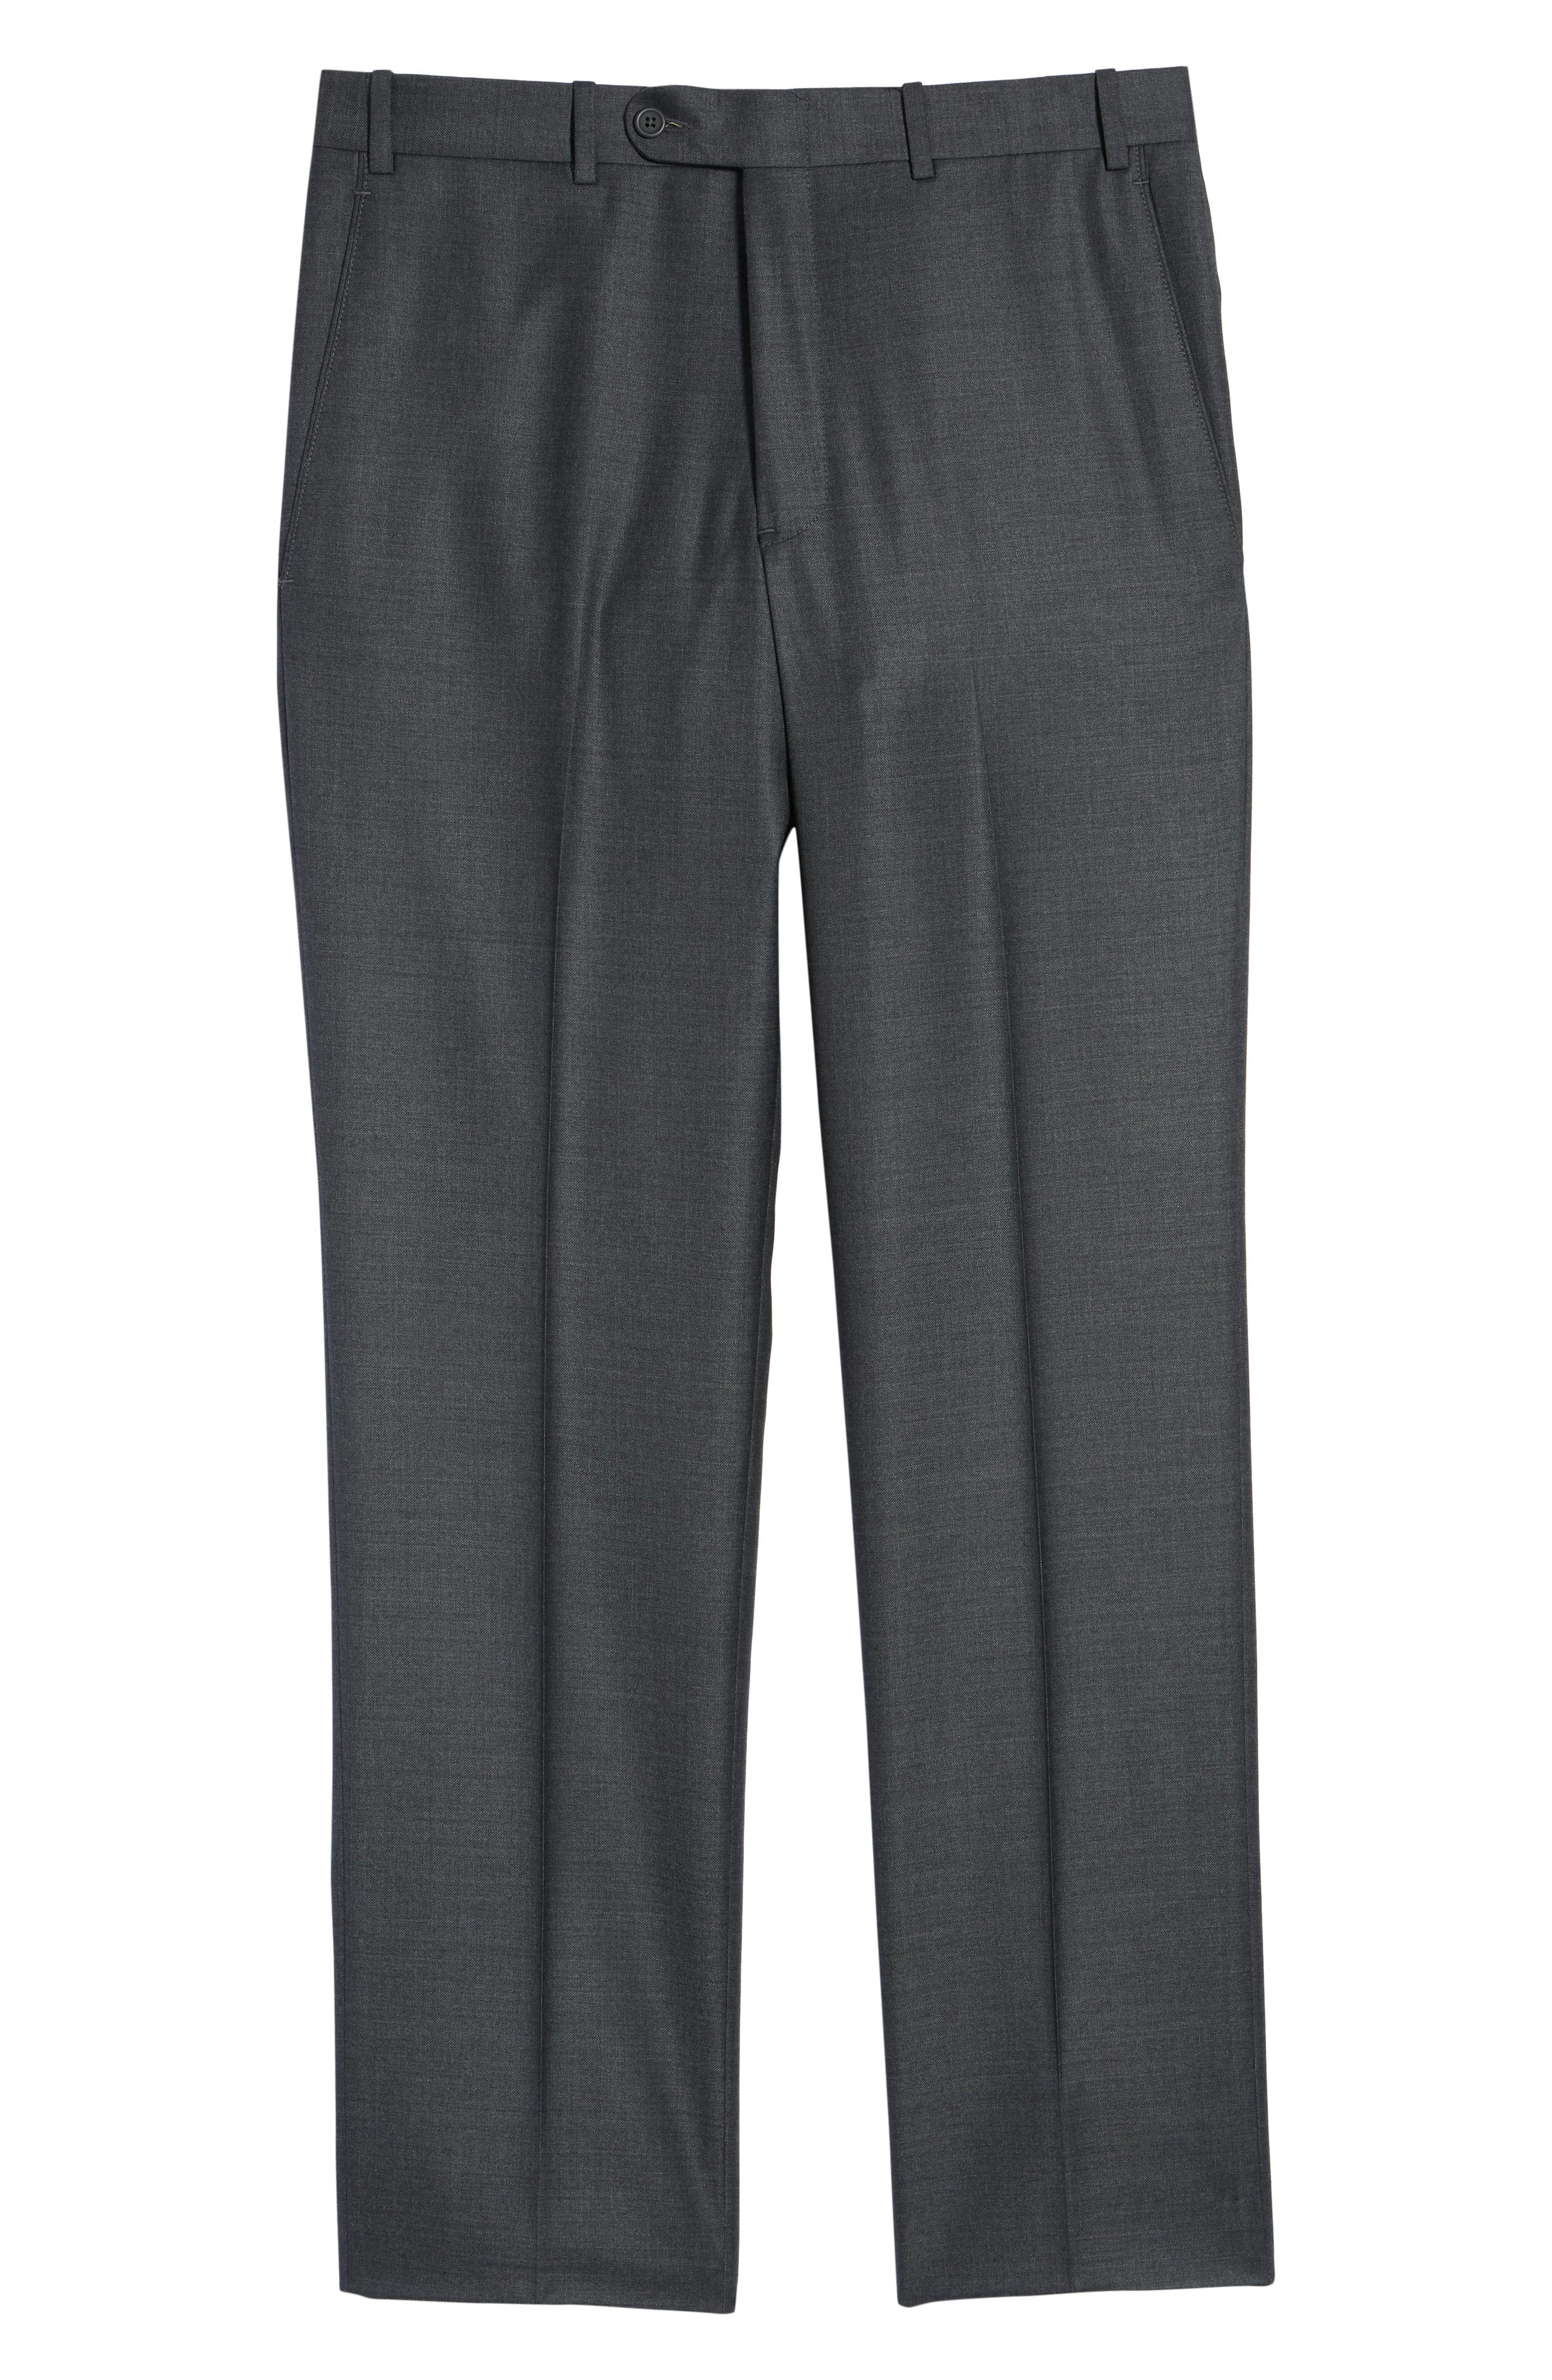 Torino Flat Front Solid Wool Trousers,                             Alternate thumbnail 16, color,